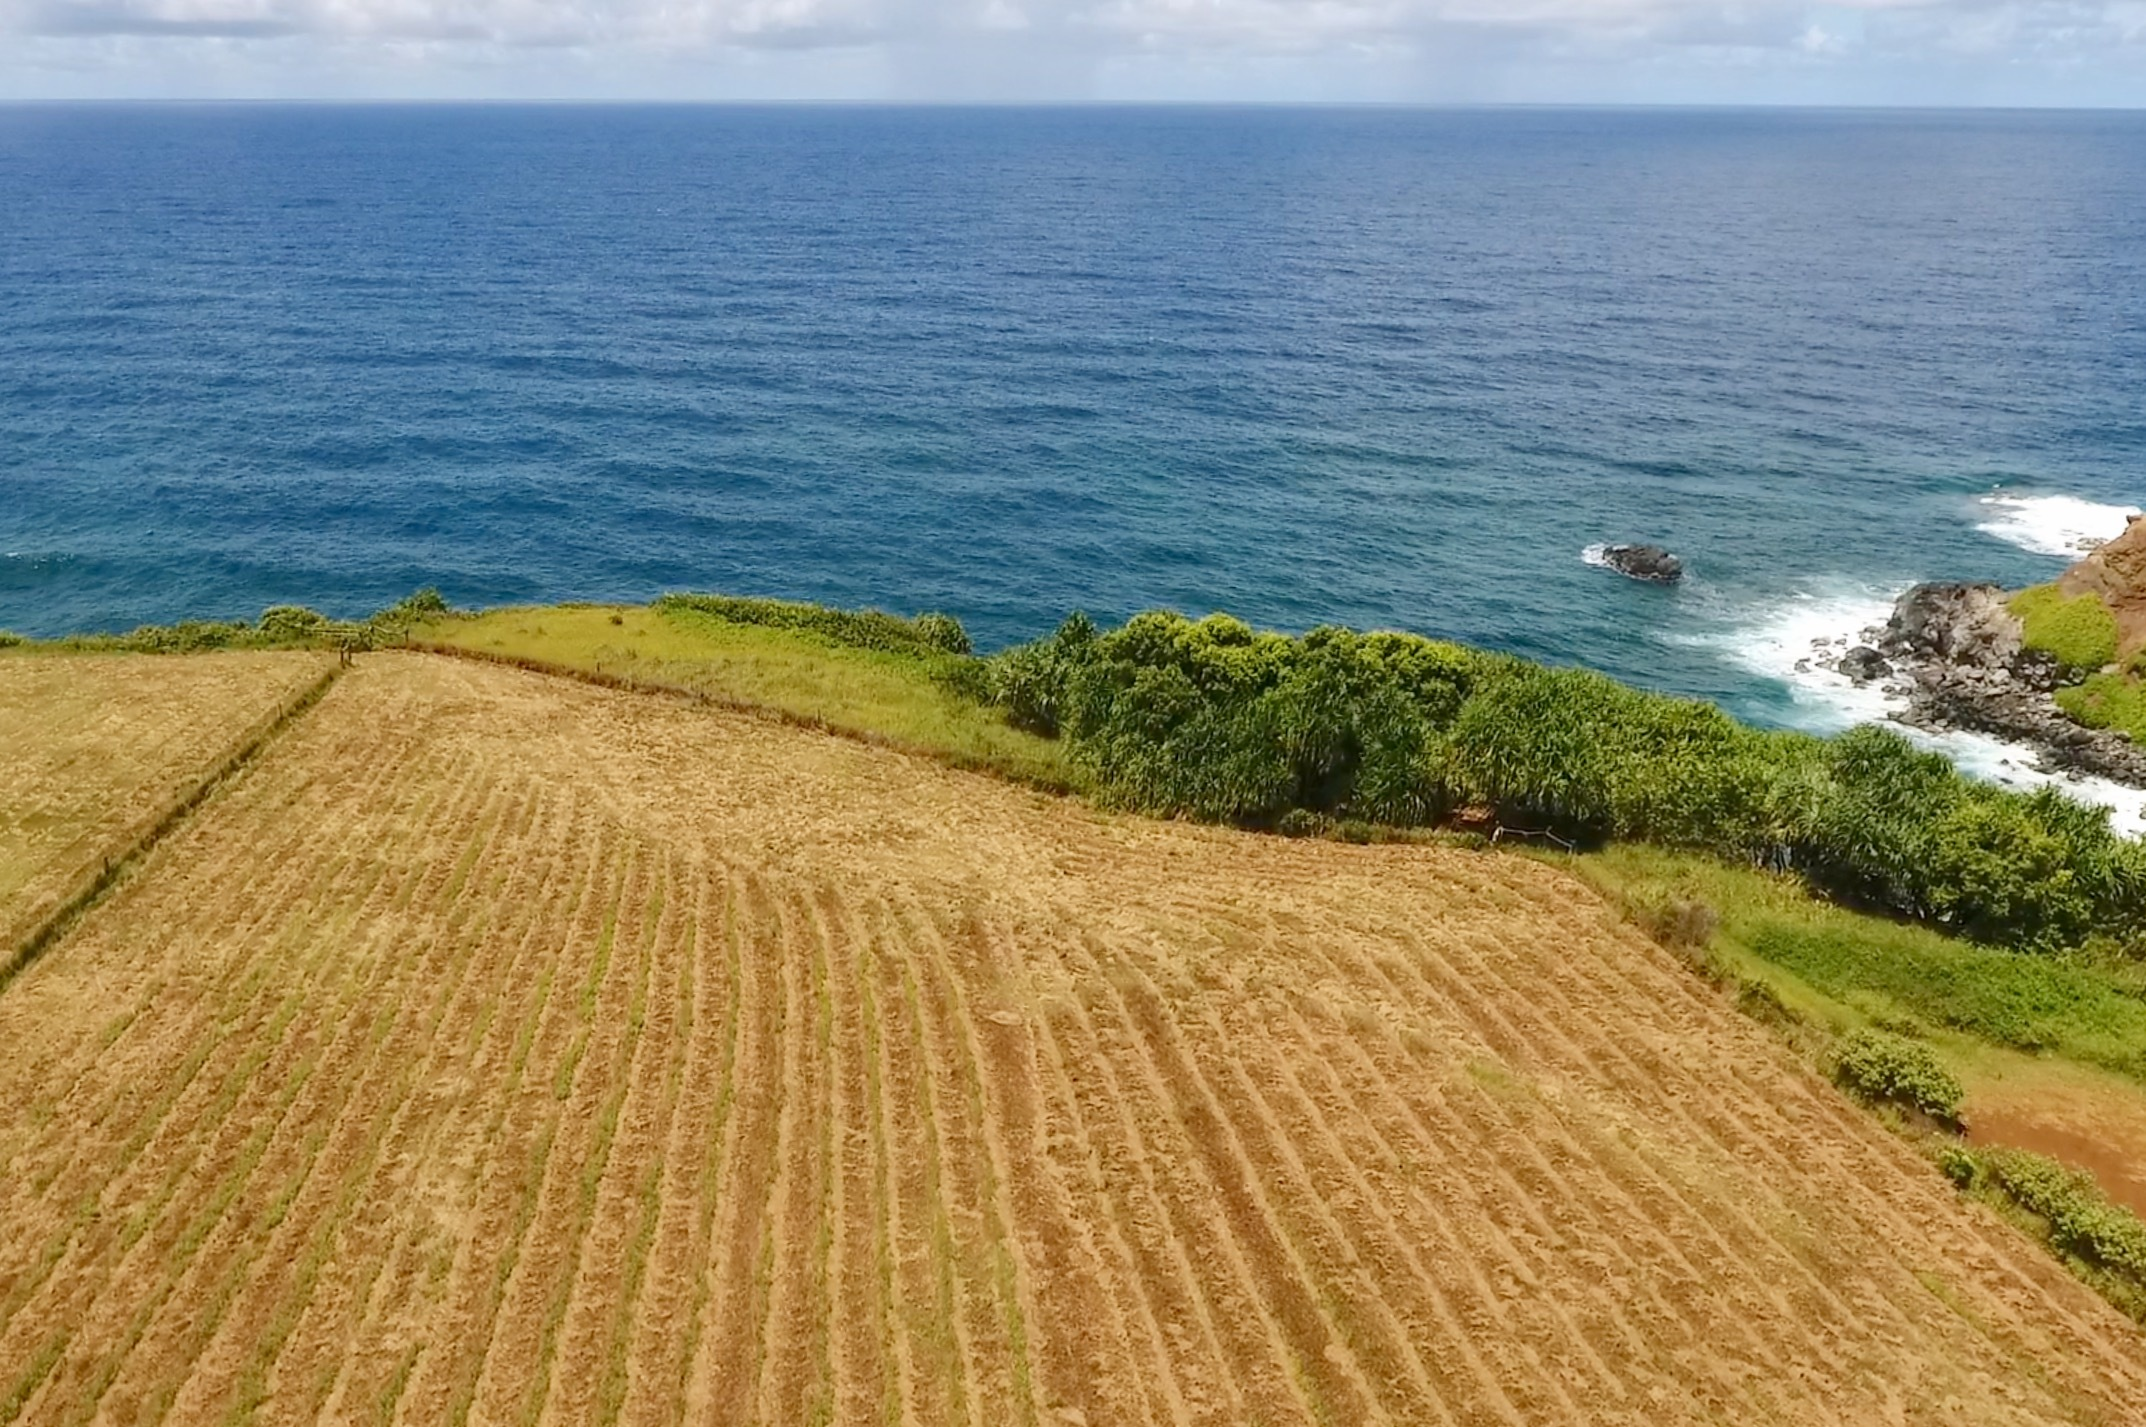 460 Hoolawa Rd - 2 oceanfront acres